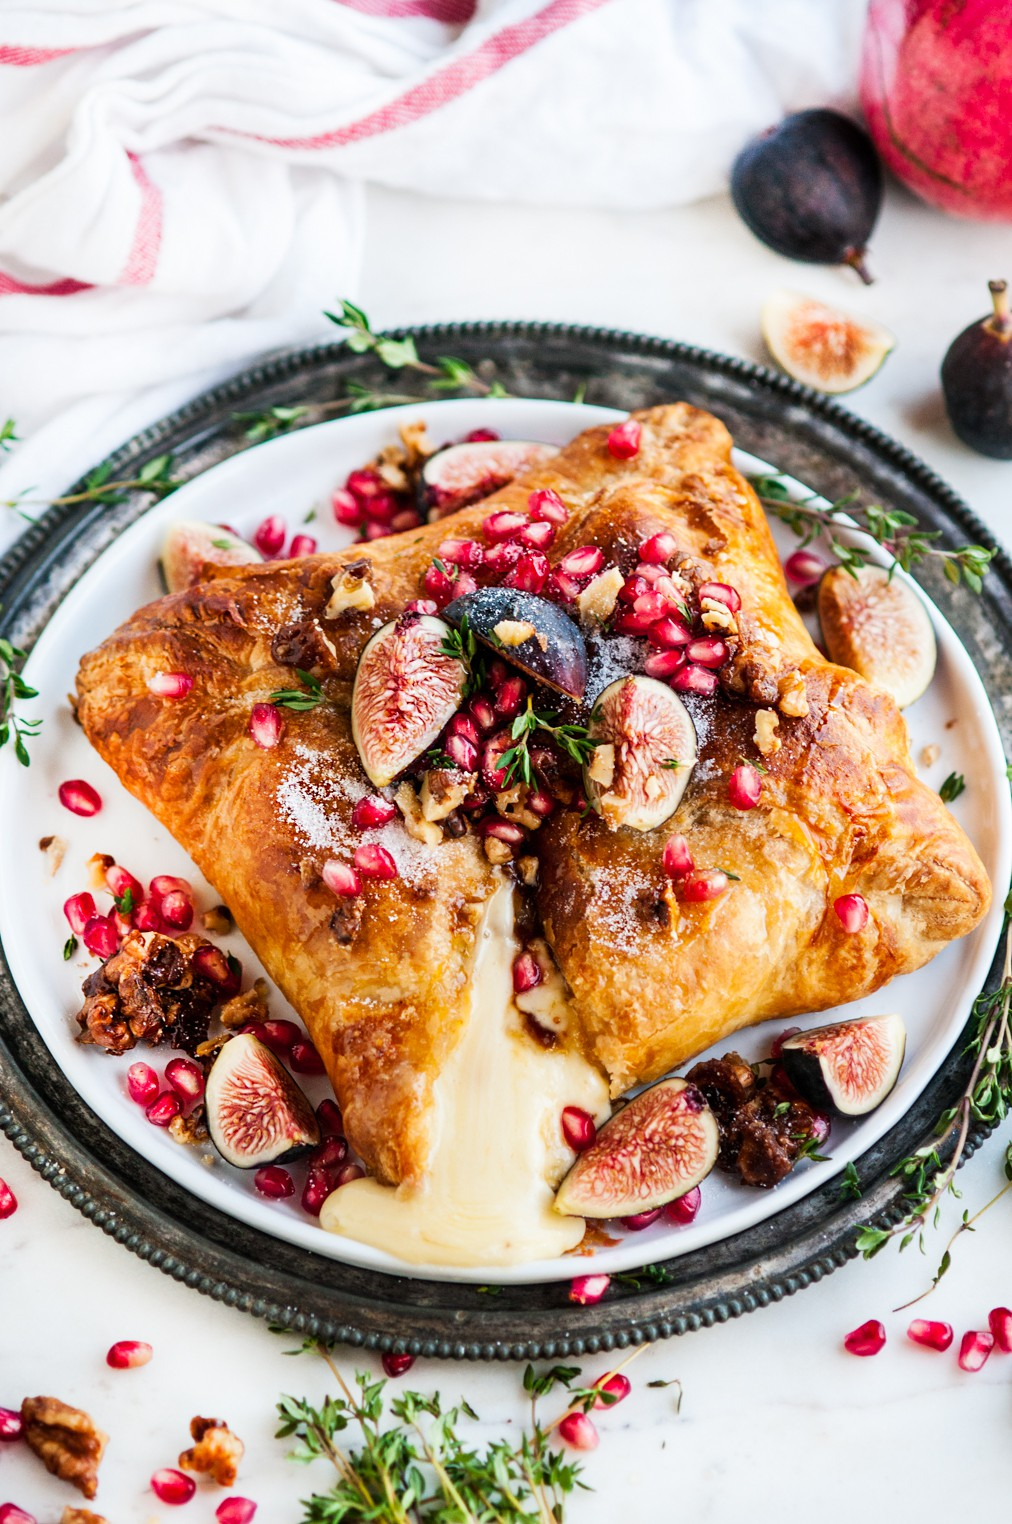 Puff-Pastry-Baked-Brie-with-Fig-and-Candied-Walnuts-7.jpg